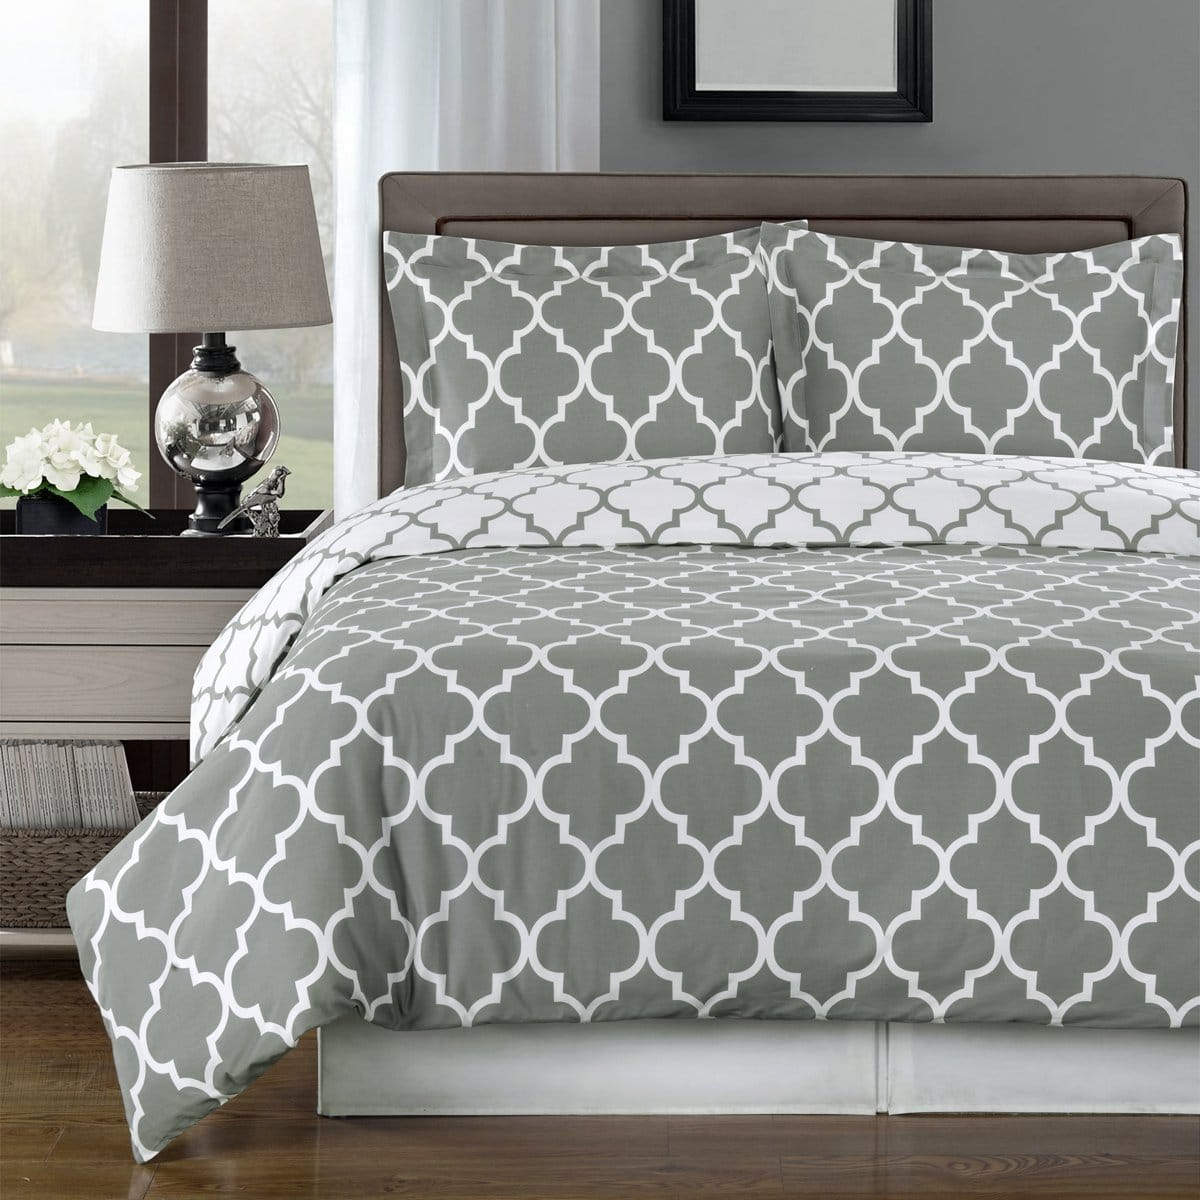 Grey And White Egyptian bedding